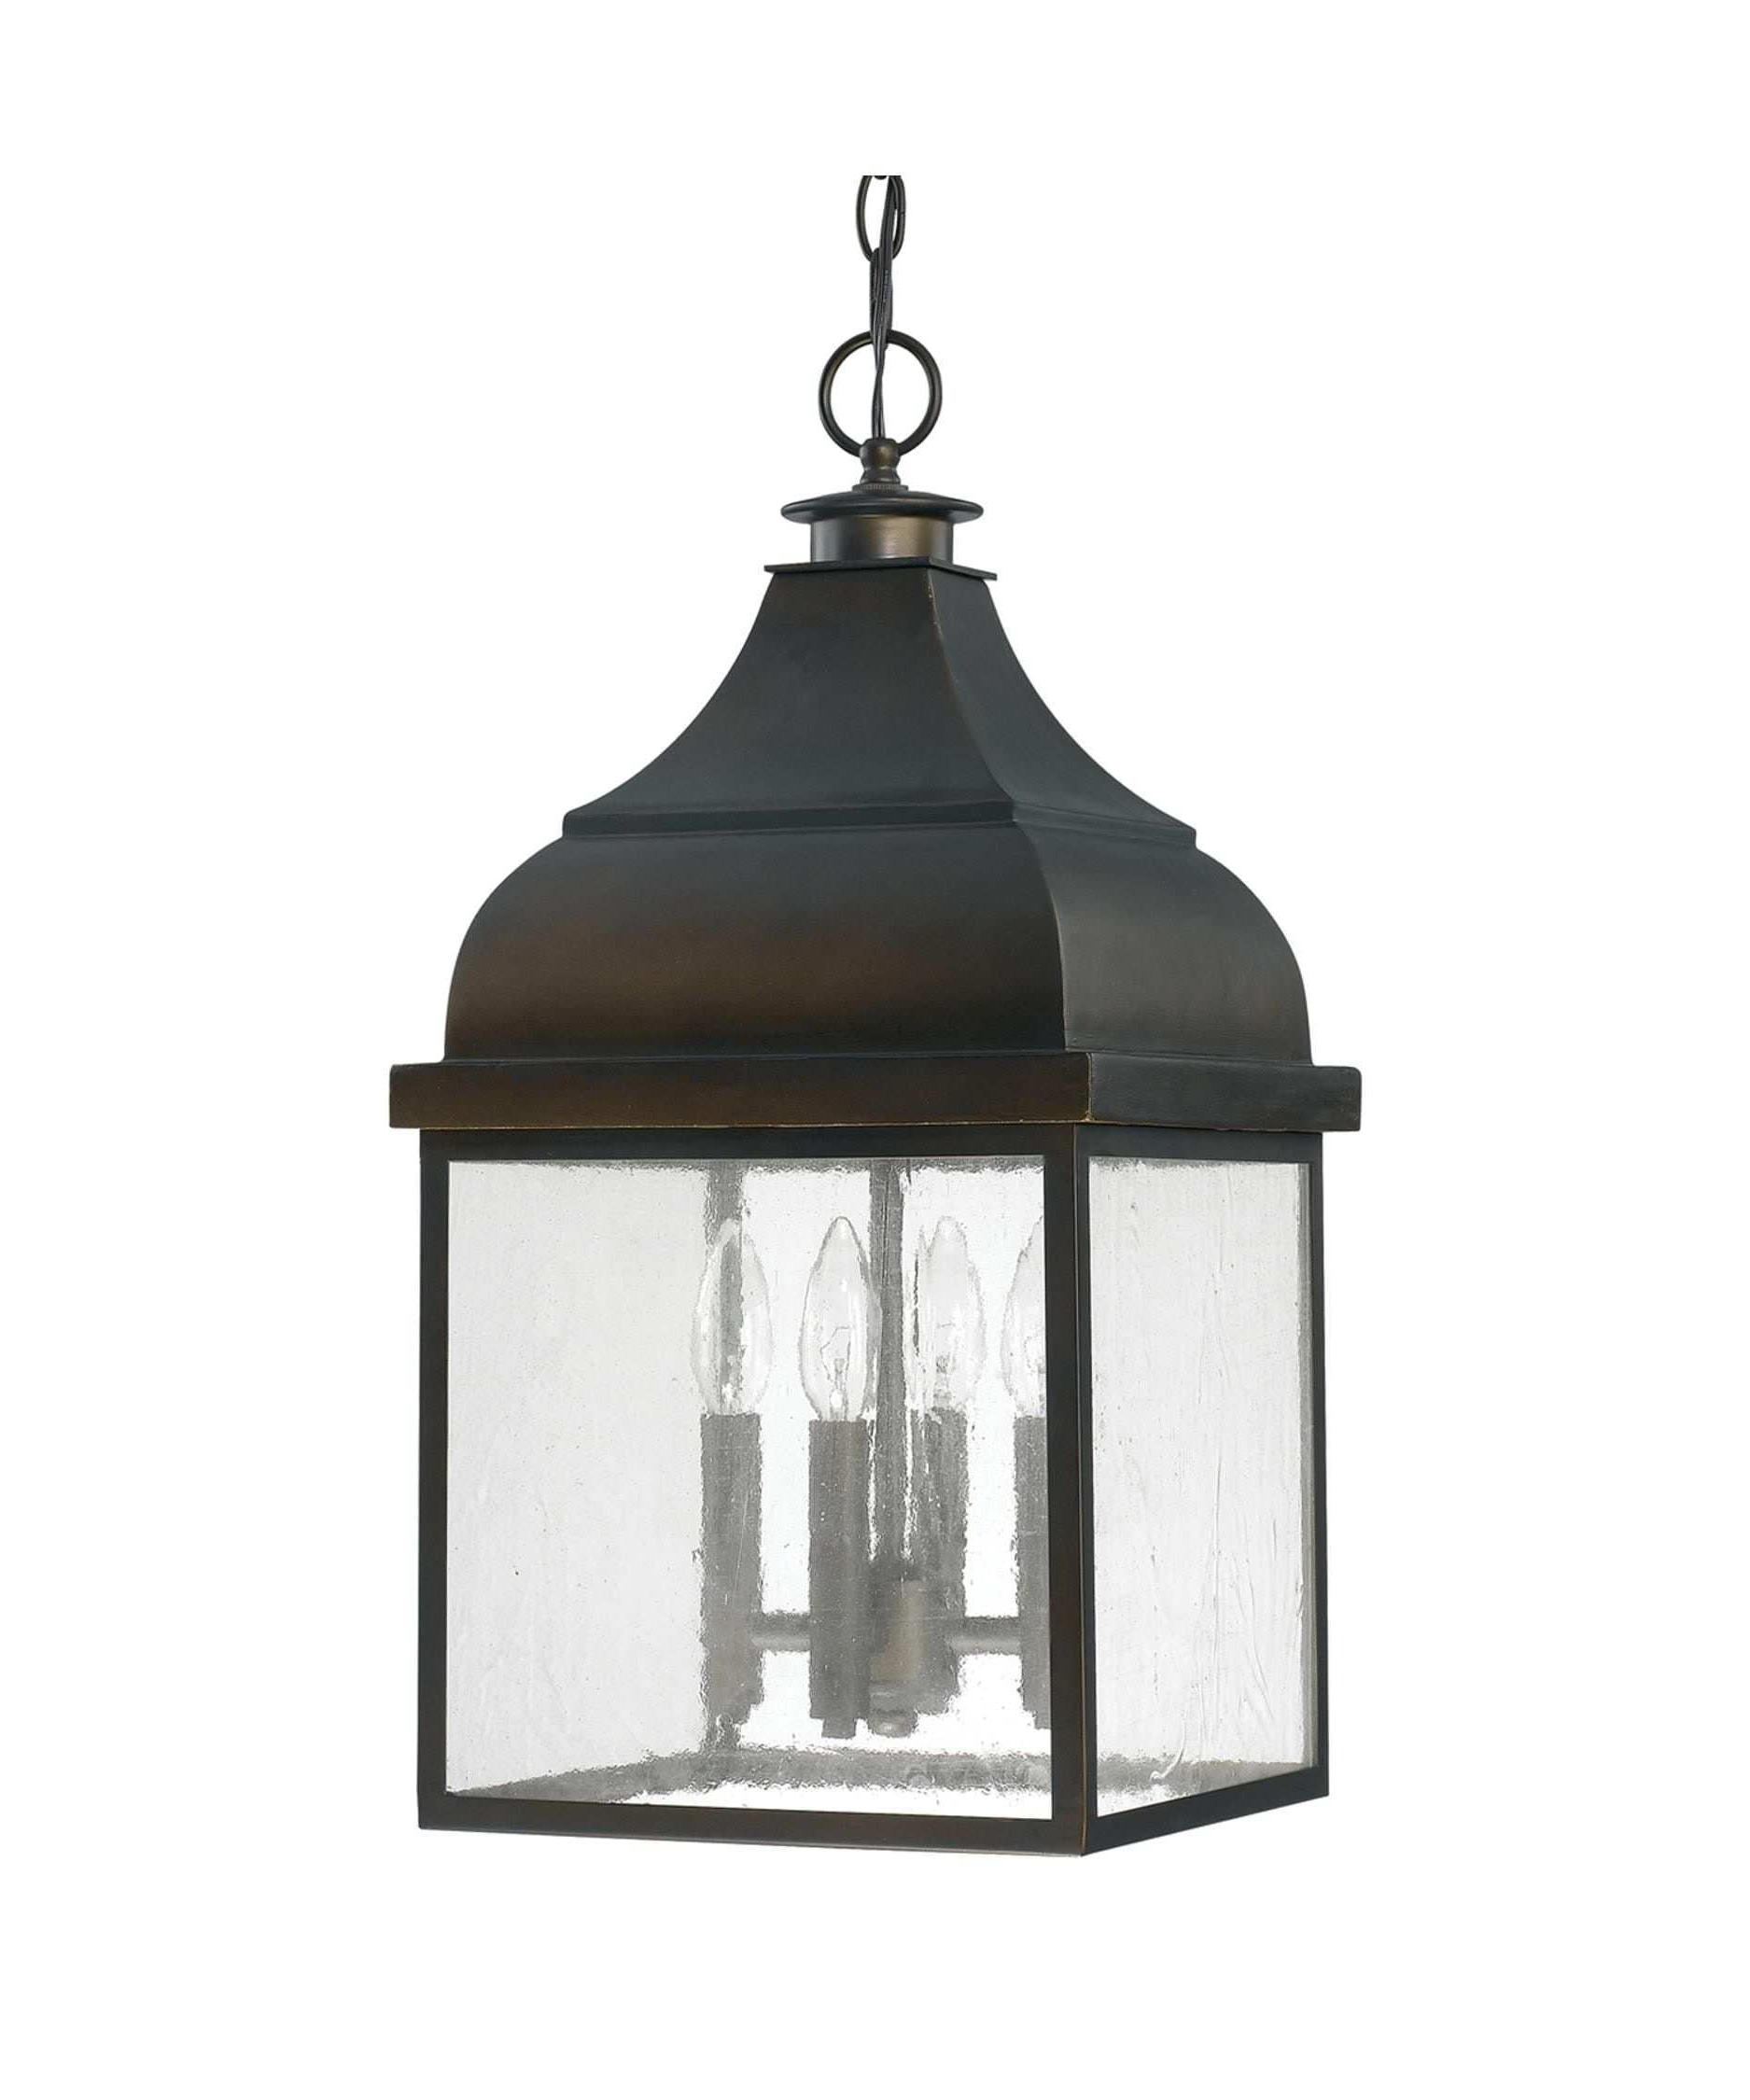 Wayfair Ceiling Light Fixtures Beautiful Outdoor Hanging Light Intended For Most Recently Released Wayfair Outdoor Hanging Lighting Fixtures (View 2 of 20)